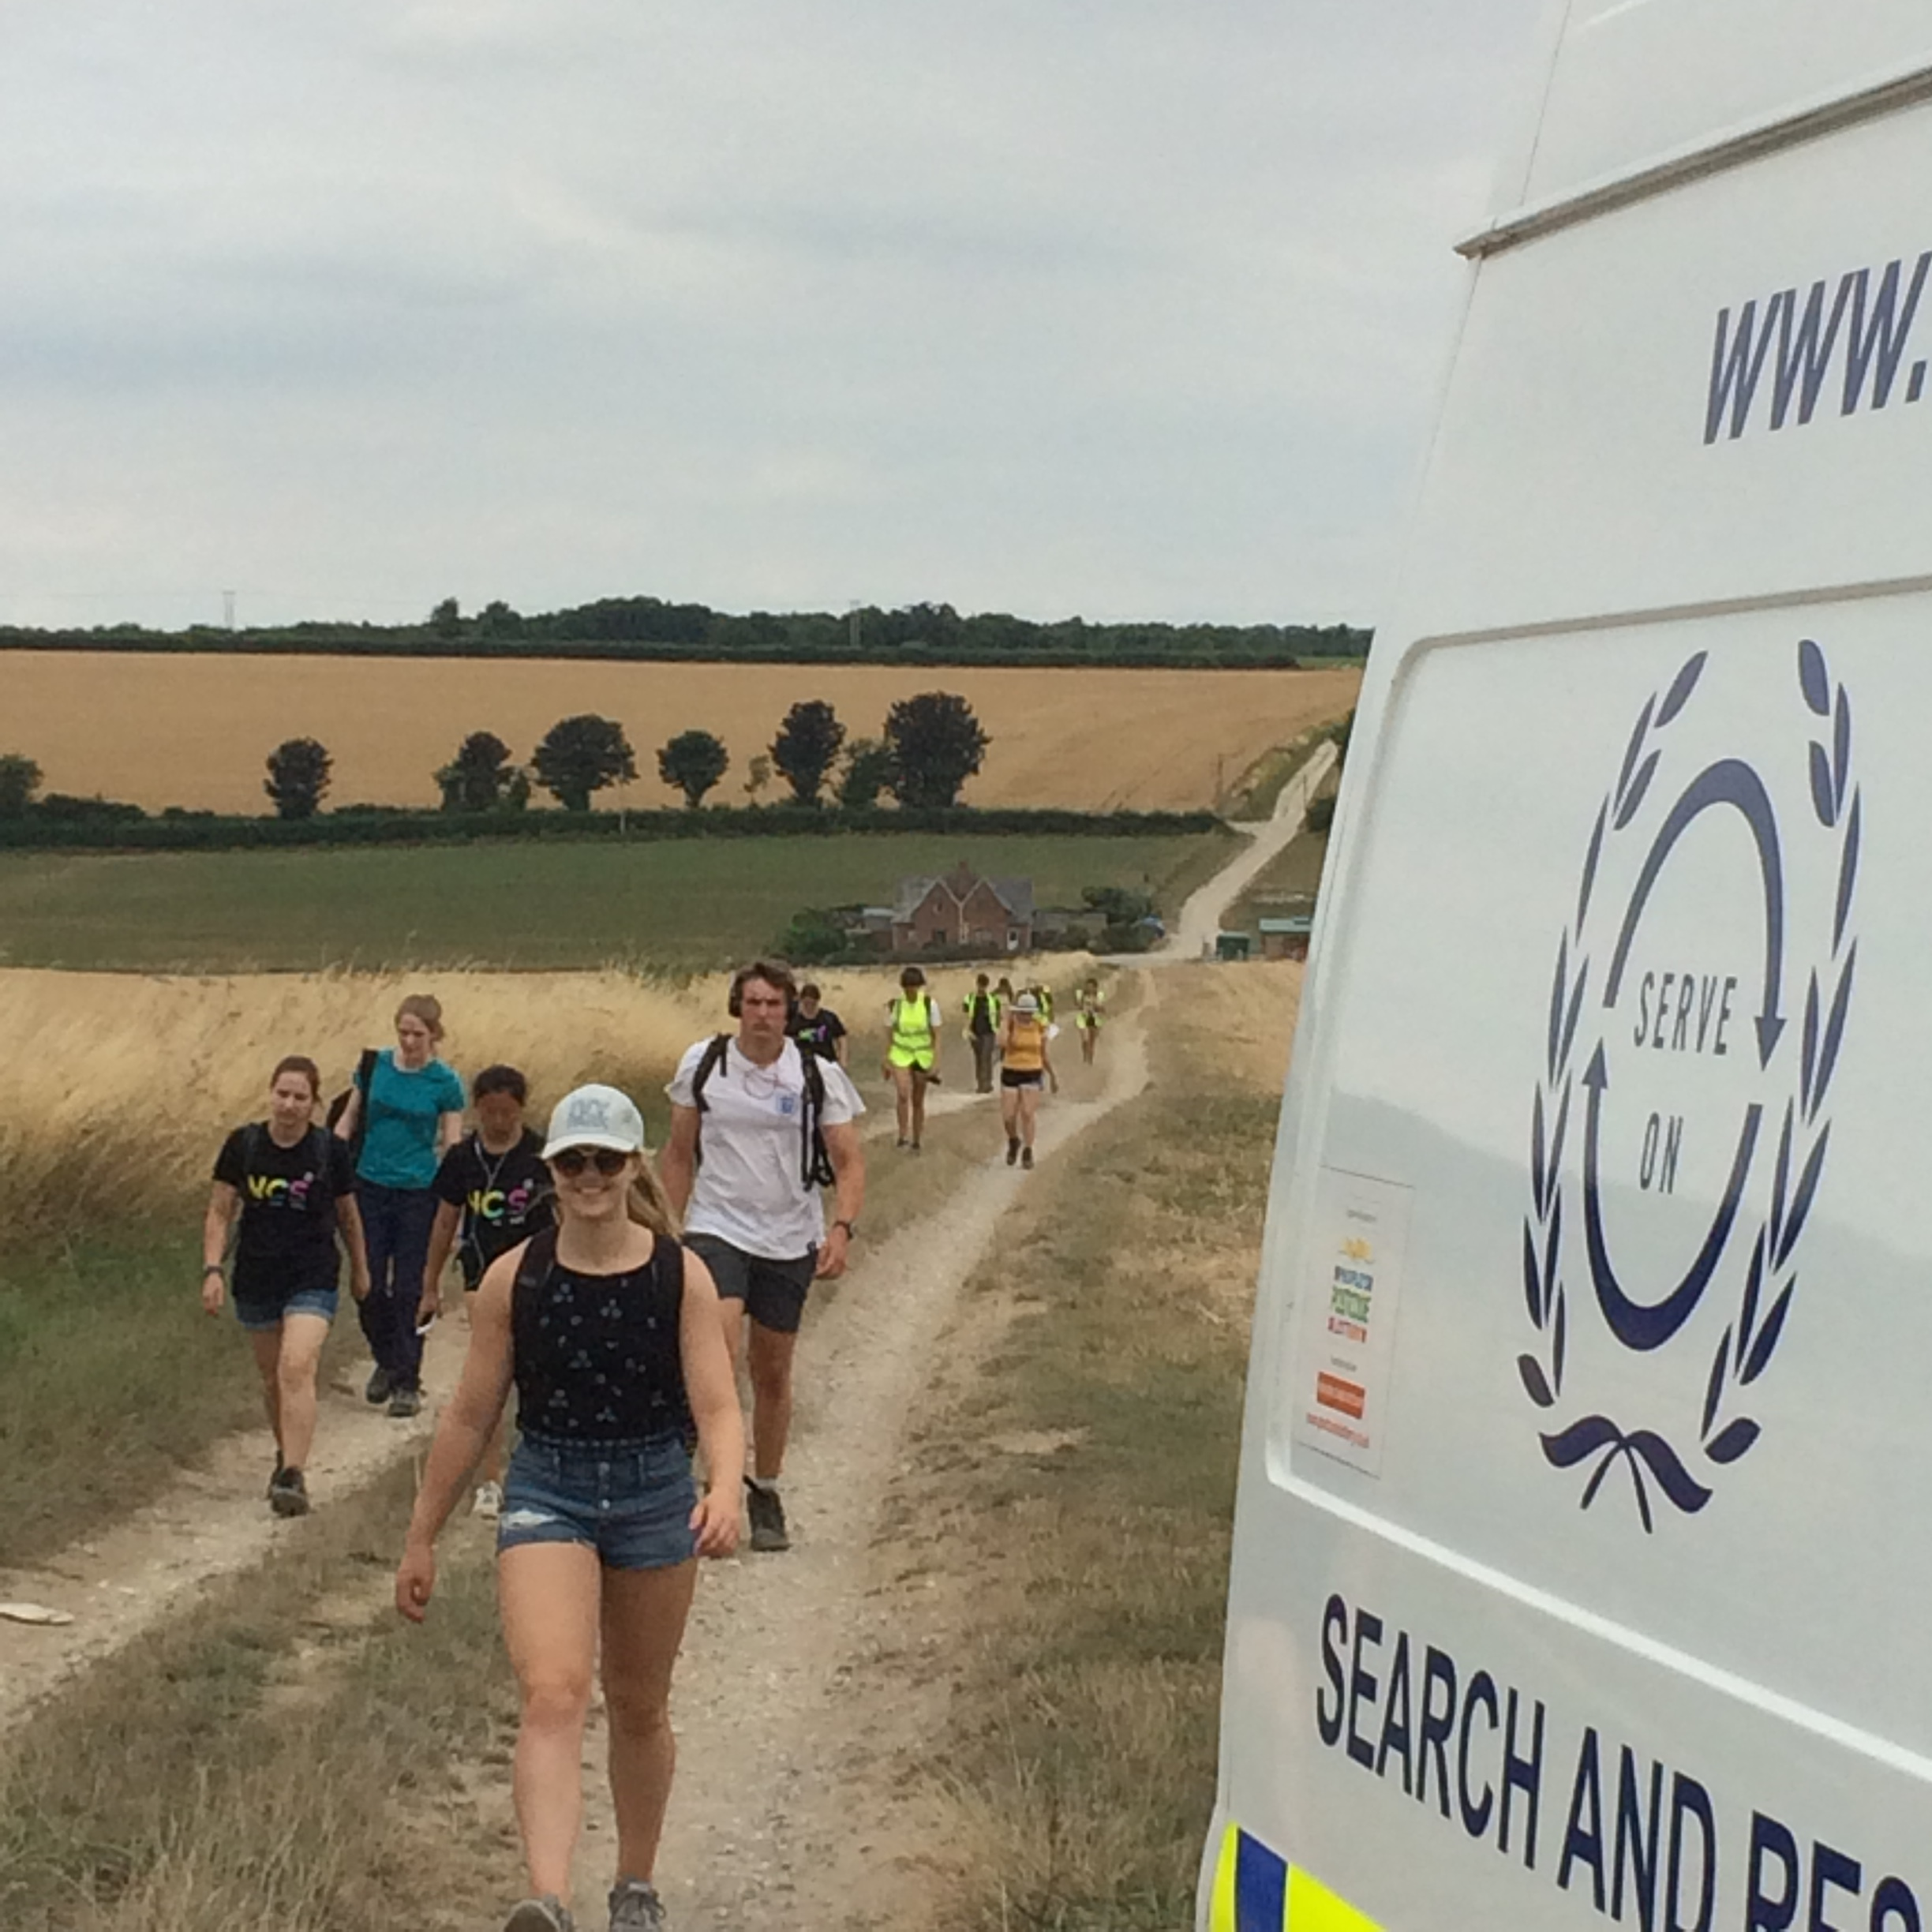 The Team 7 NCS youngsters walking the 10 miles from Stonehenge to Salisbury to raise money for Headlight,with transport and safety support from Serve On volunteers.